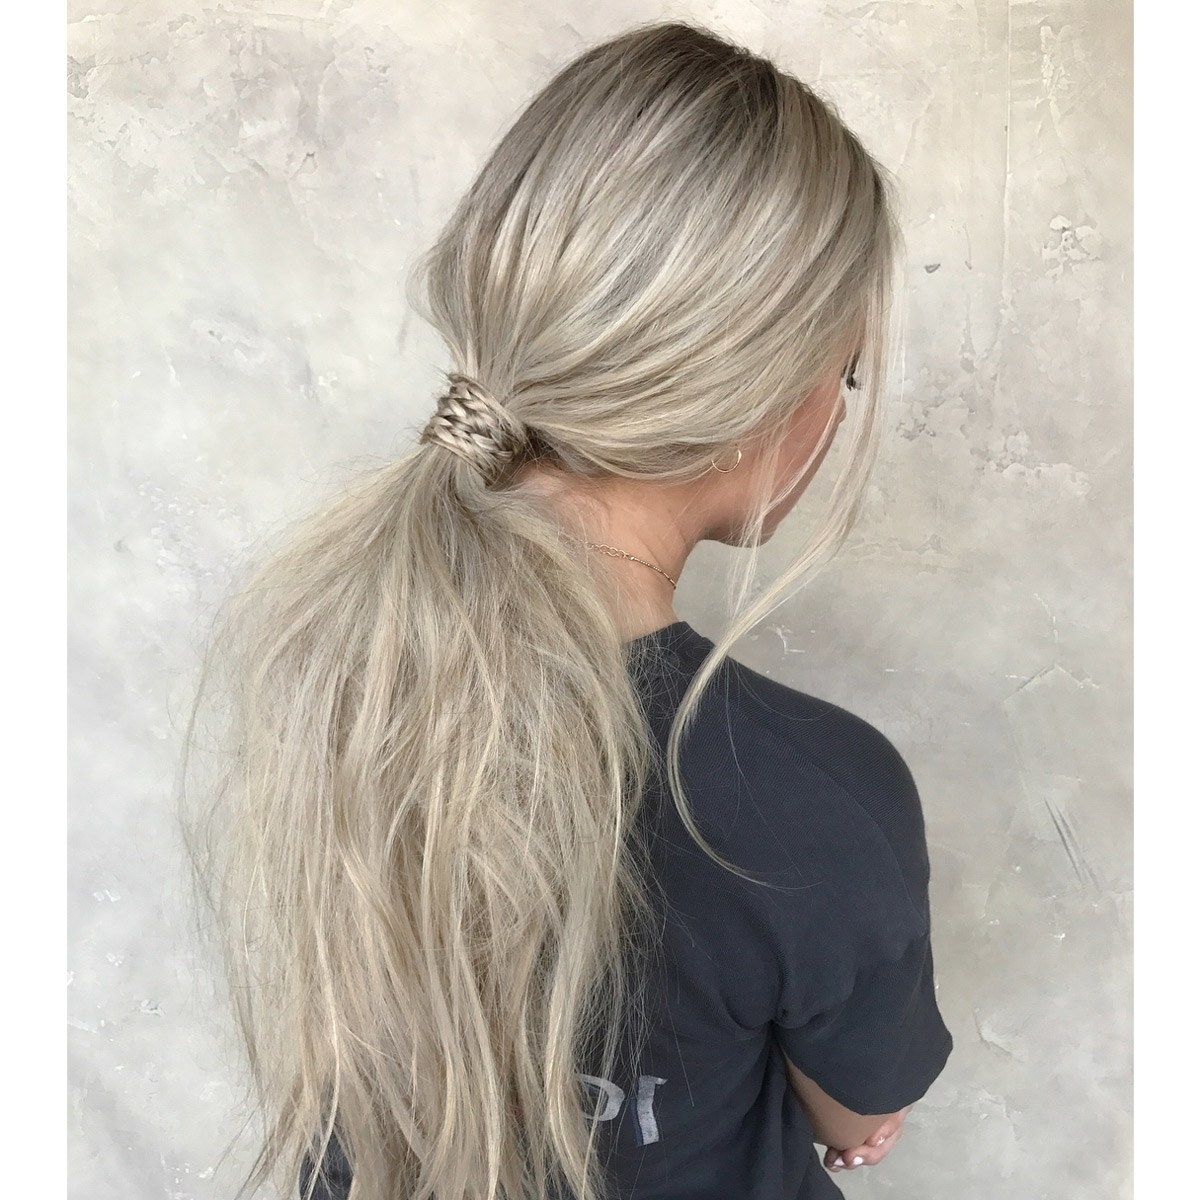 27 Ponytail Hairstyles For 2018: Best Ponytail Styles (View 10 of 20)